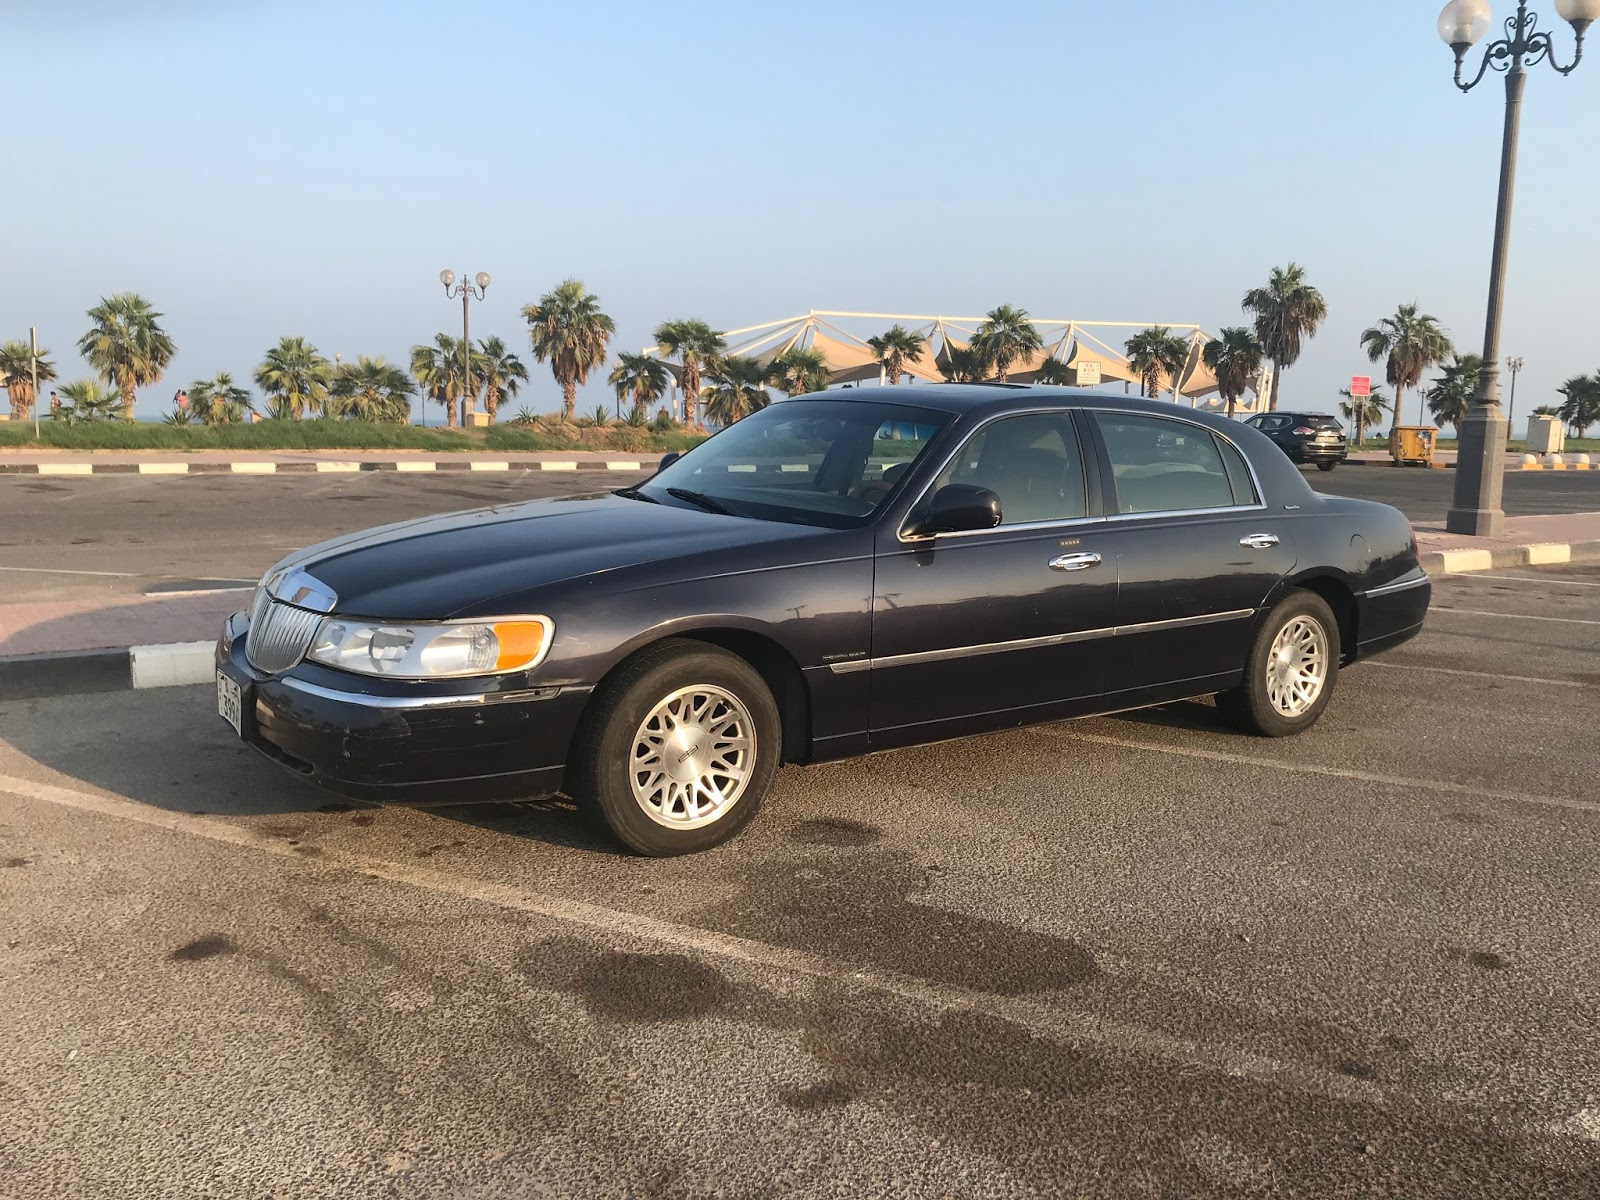 medium resolution of so in the spirit of the blues i just acquired my own bluesmobile a 1999 lincoln town car signature edition in fantastic condition